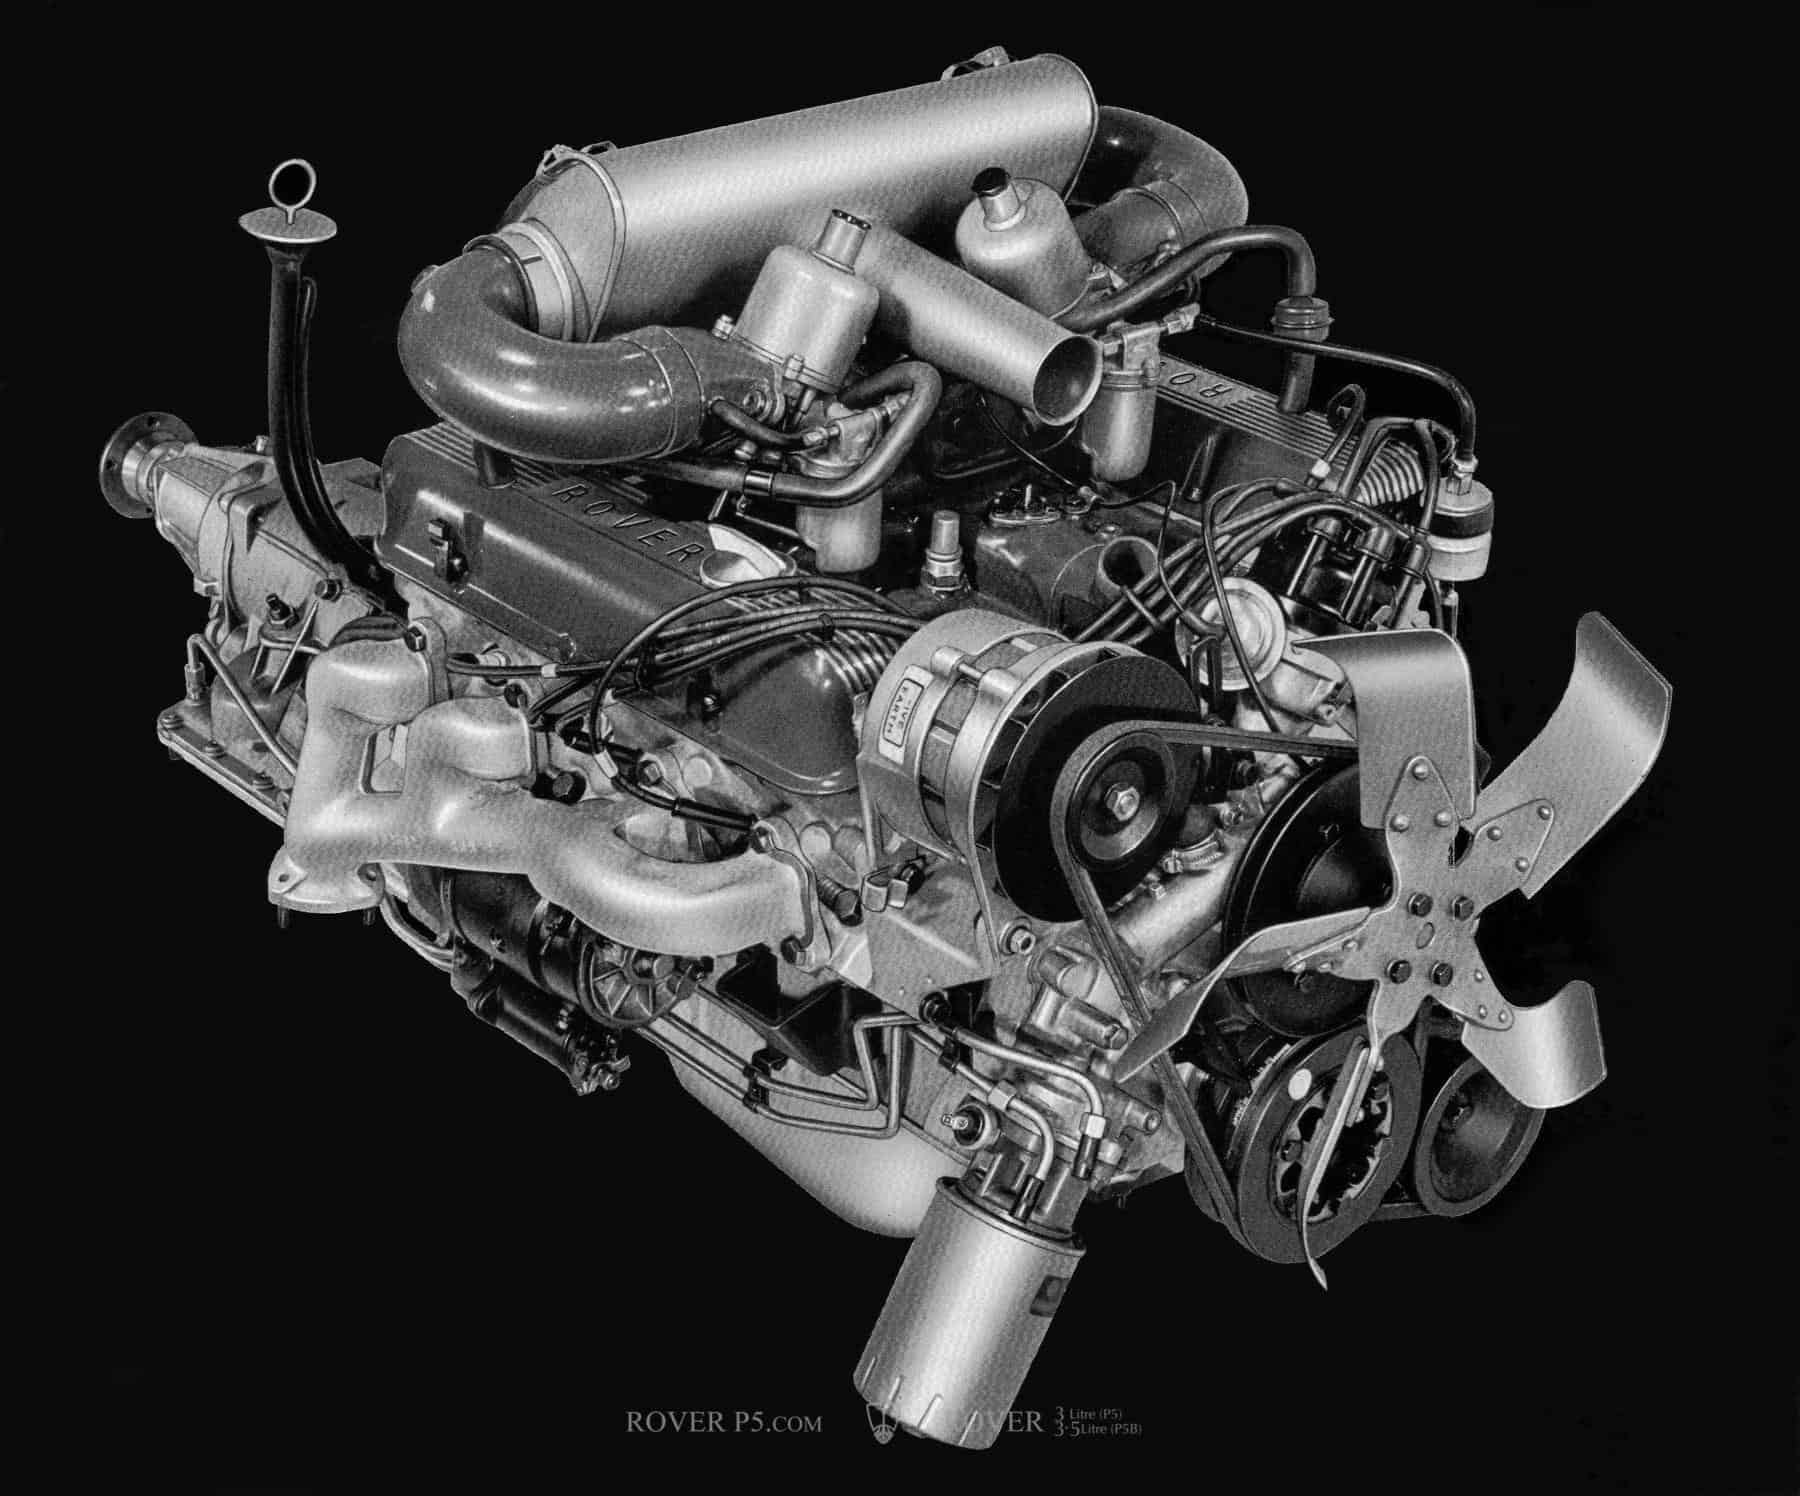 An Americans View of the Rover 3.5 Litre V8